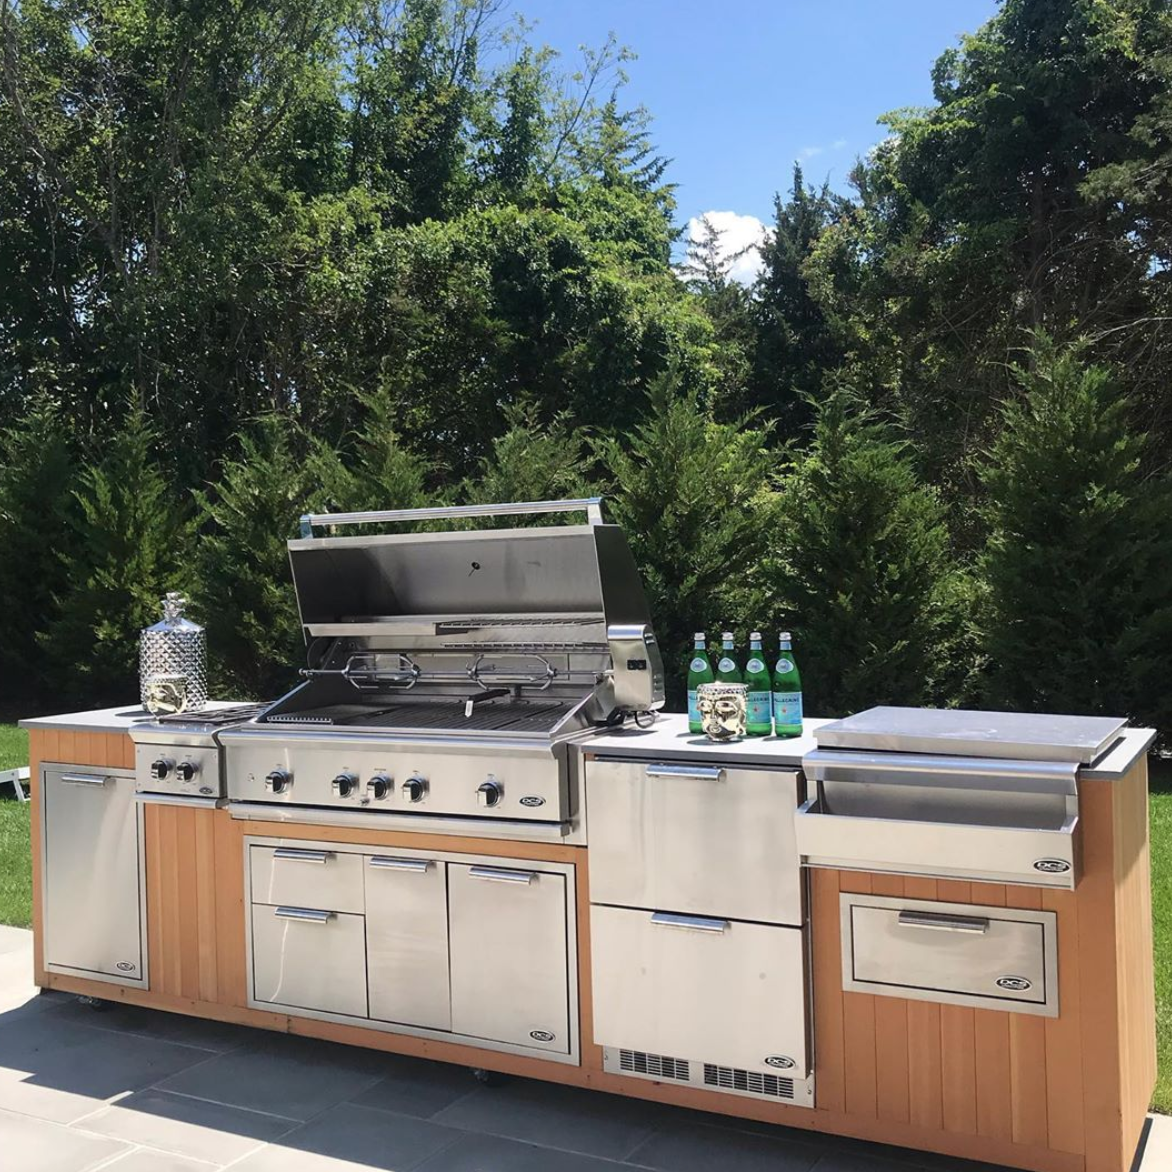 Dcs Dcsop10f3 48 Inch Built In Grill Package Natural Gas W Rotisserie And Charcoal Outdoor Kitchen Outdoor Kitchen Appliances Built In Grill